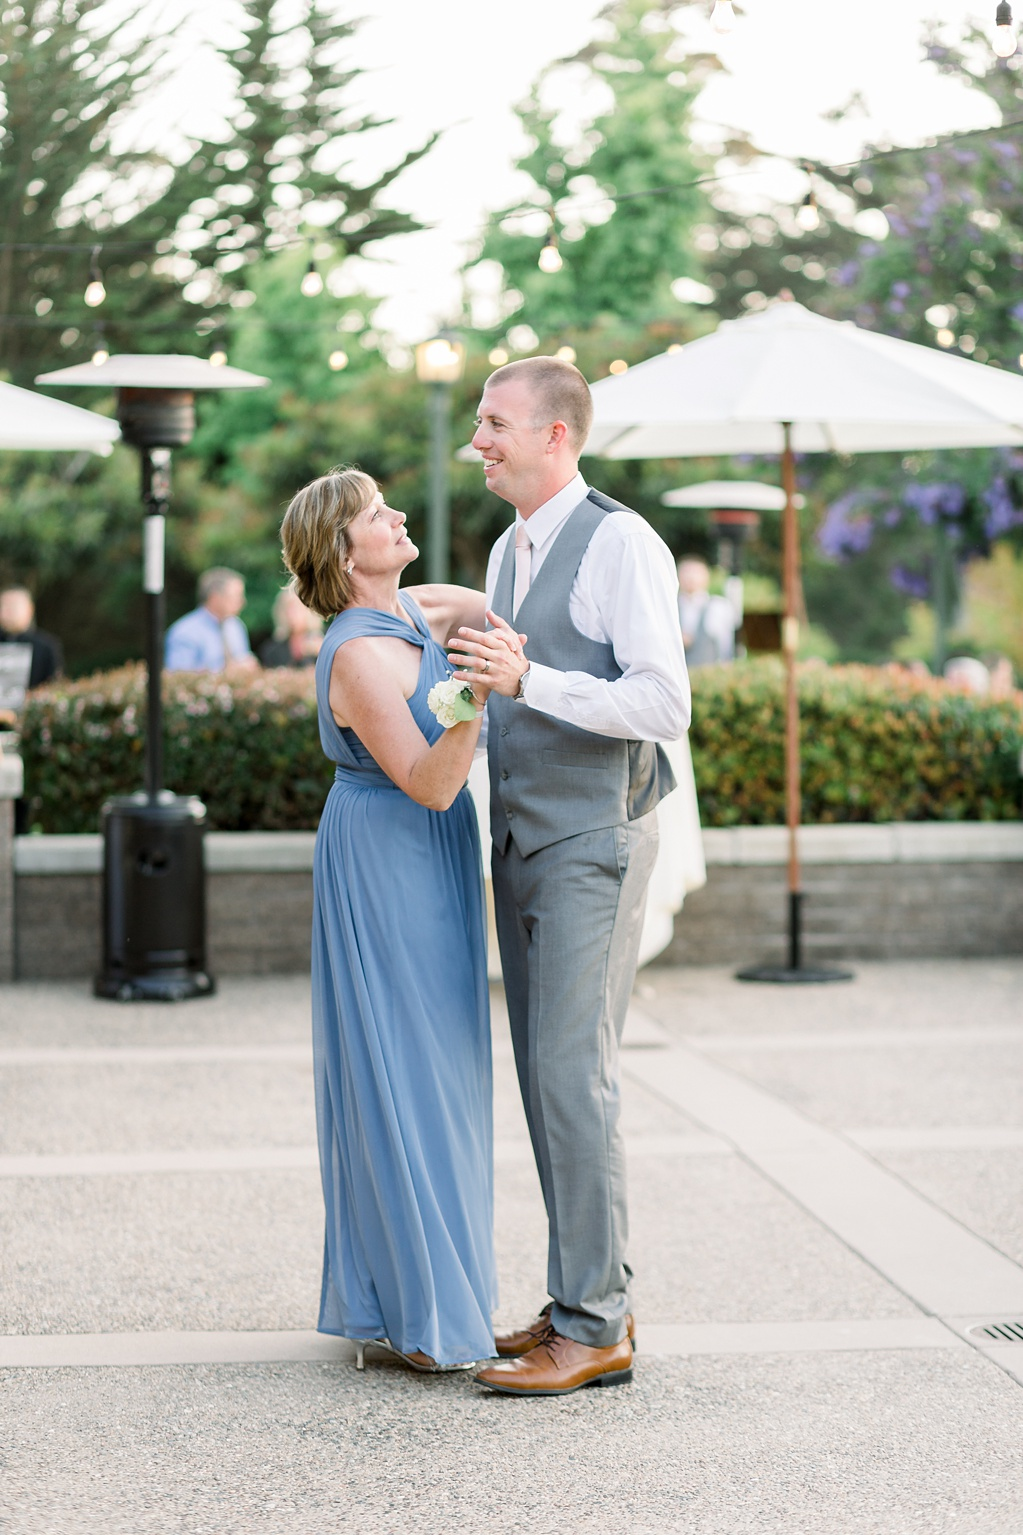 White Barn Inspired Summer Wedding In The Valley of Arroyo Grande, California by Wedding Photographer Madison Ellis. (33)